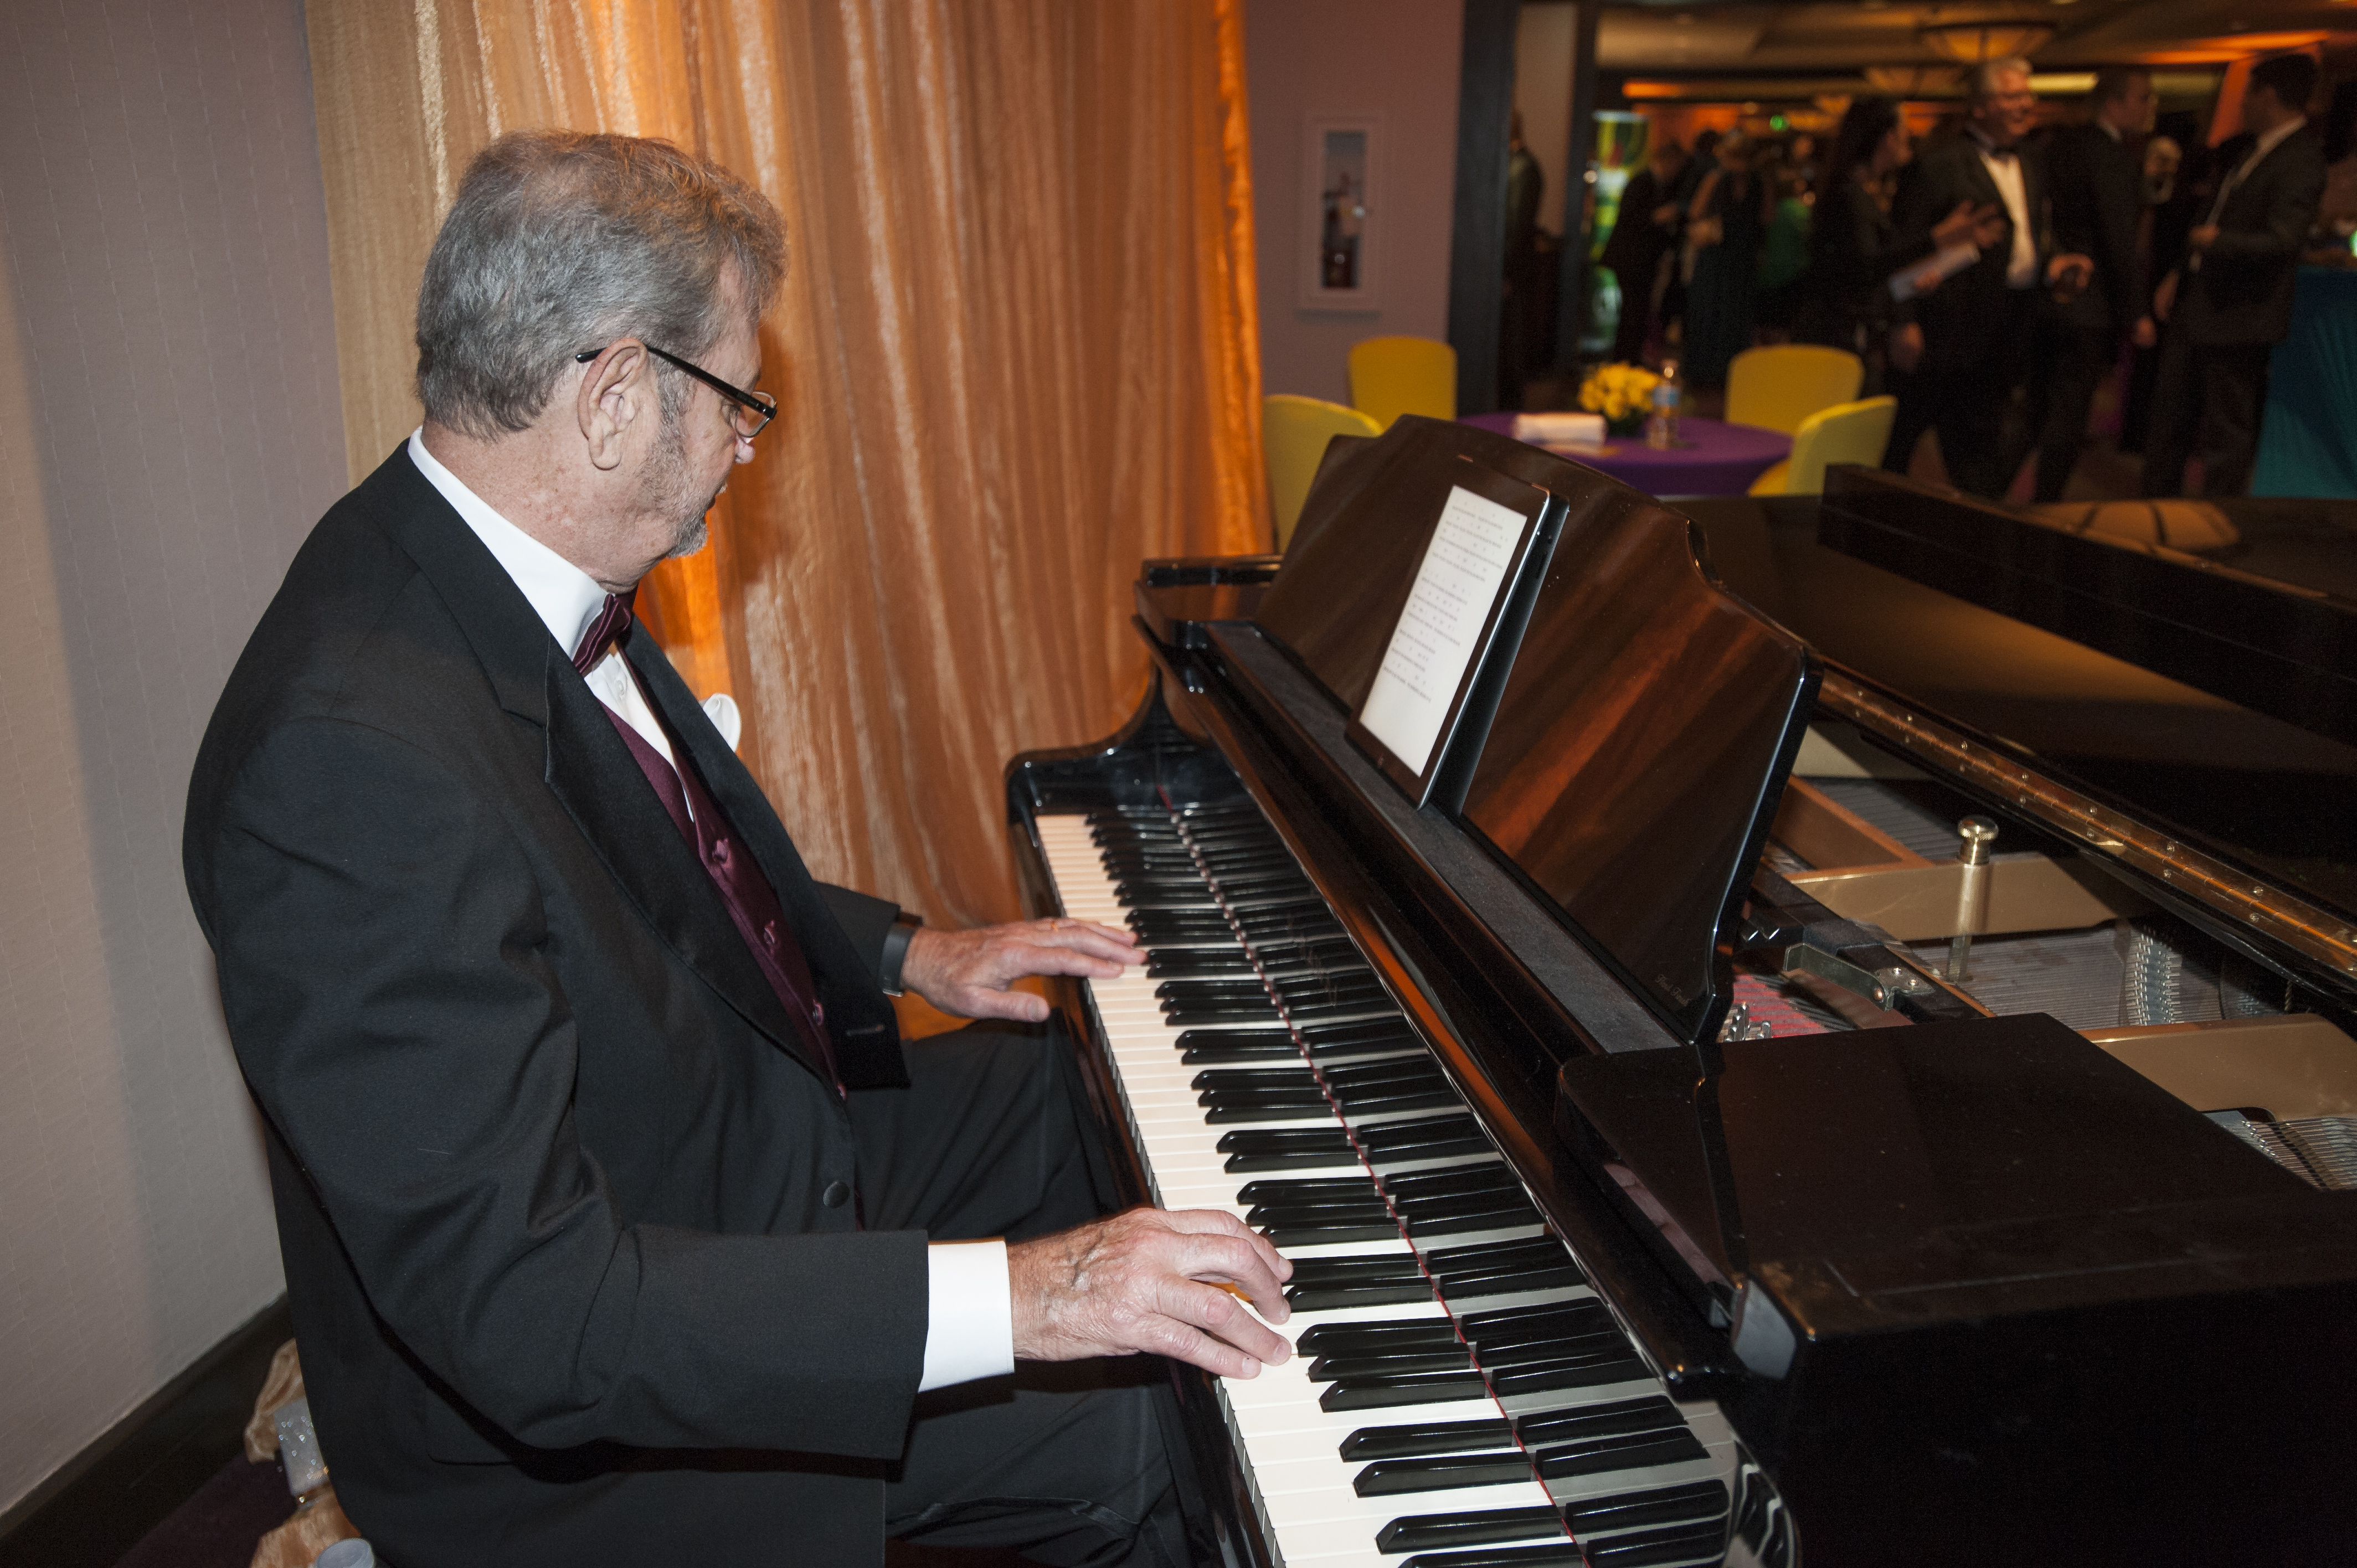 Man playing the piano at Wizard of Oz gala